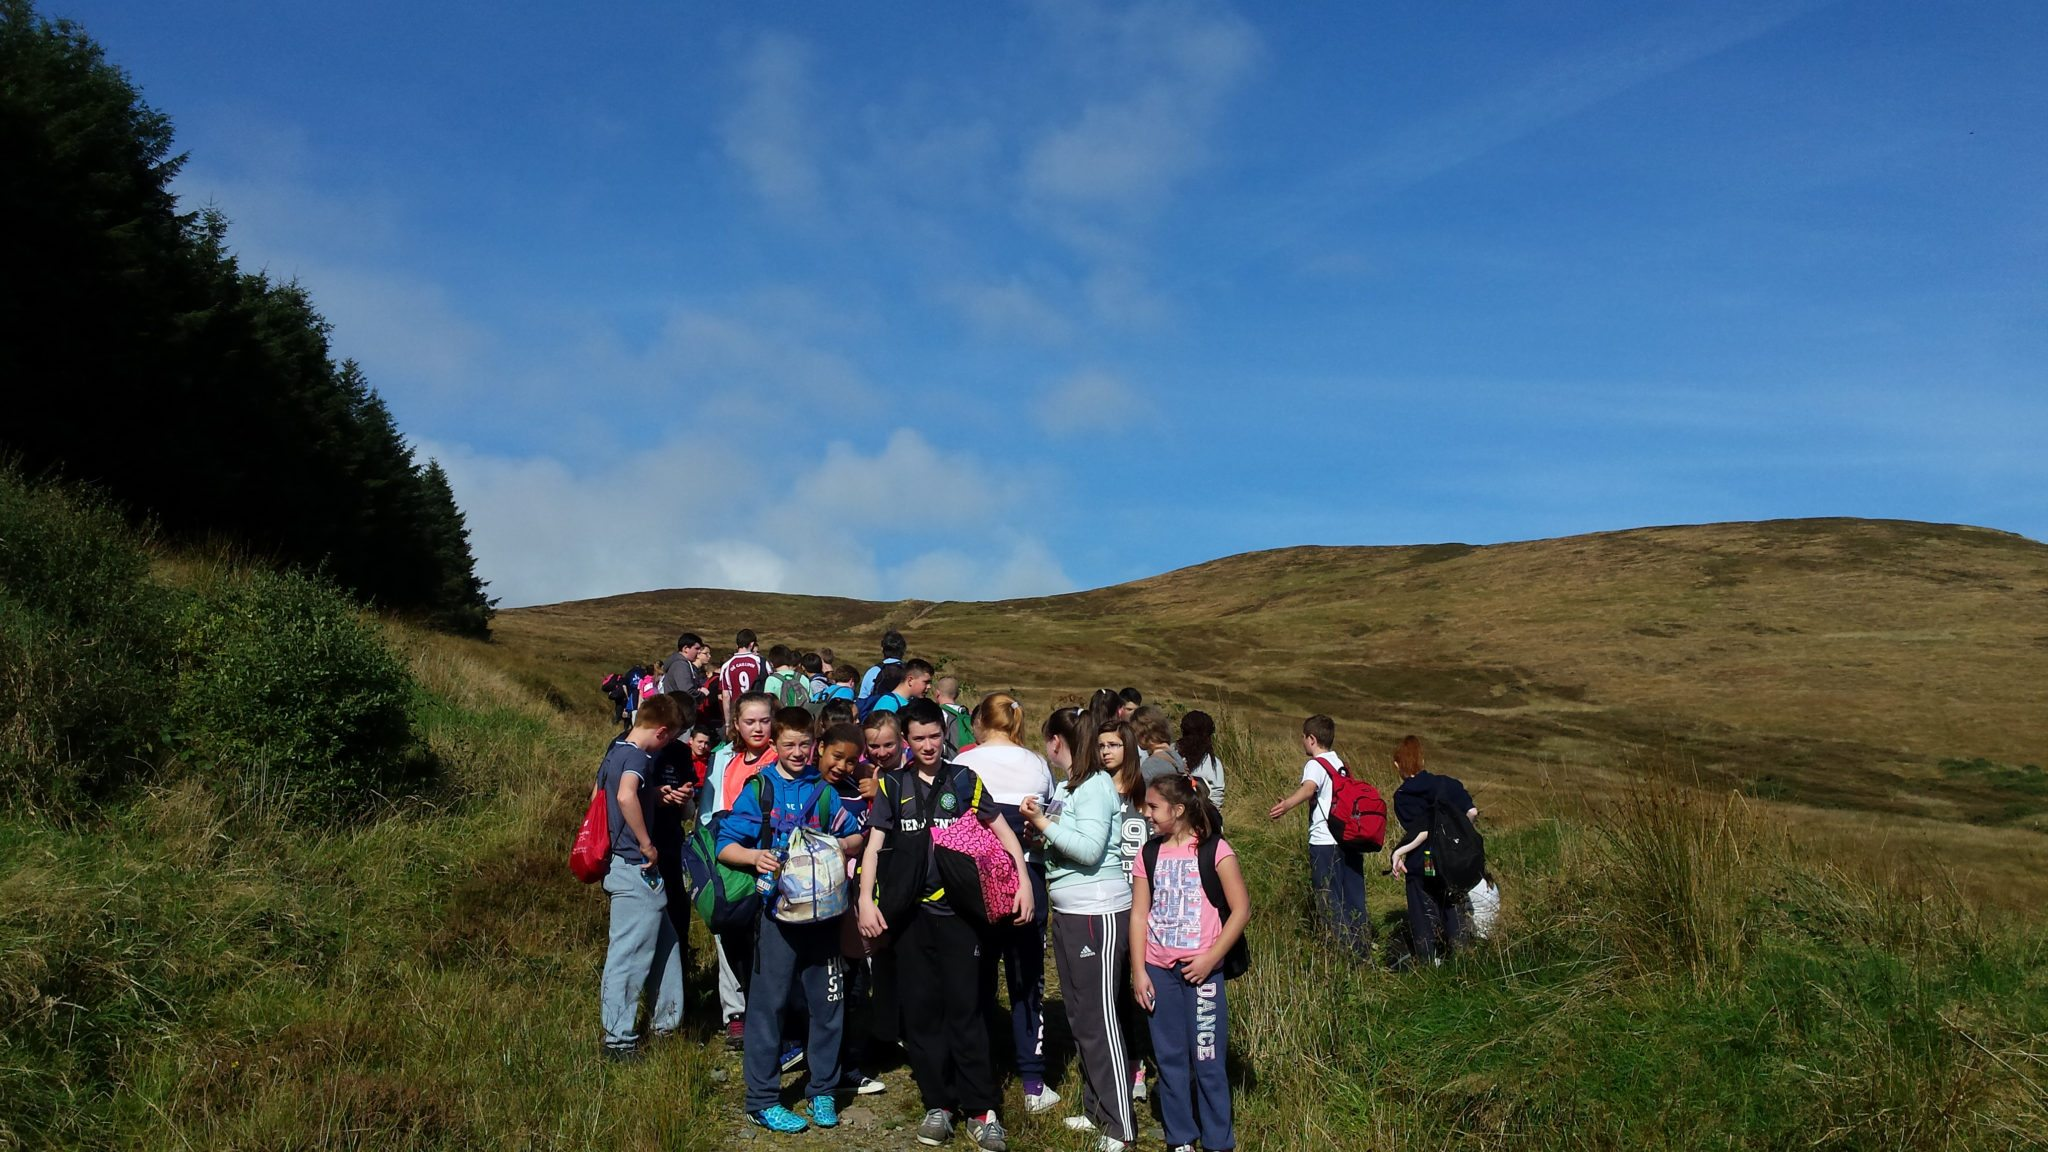 Transition Year Students 2014 with their First Year Buddies on the 2014 Buddy Hike